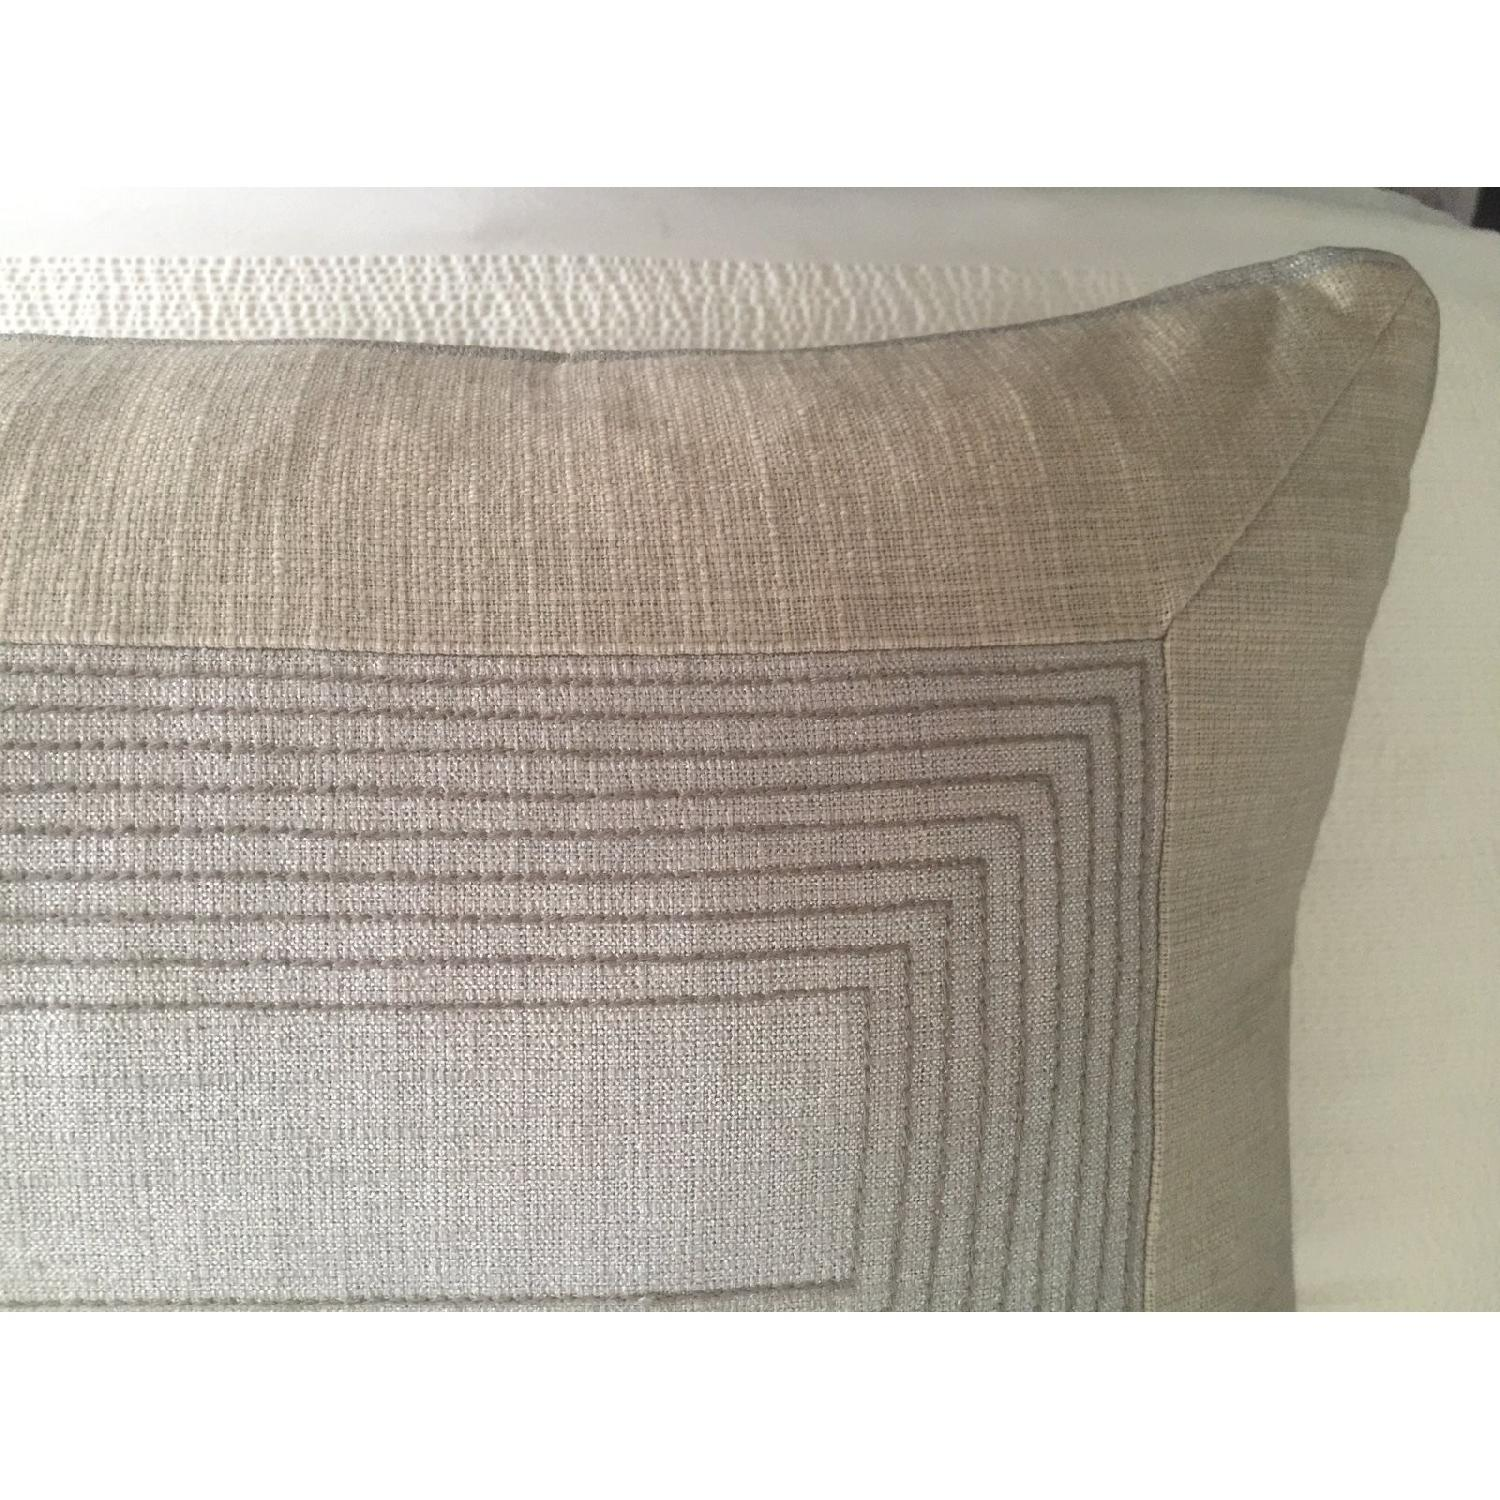 Contemporary Metallic Embroidered Pillows